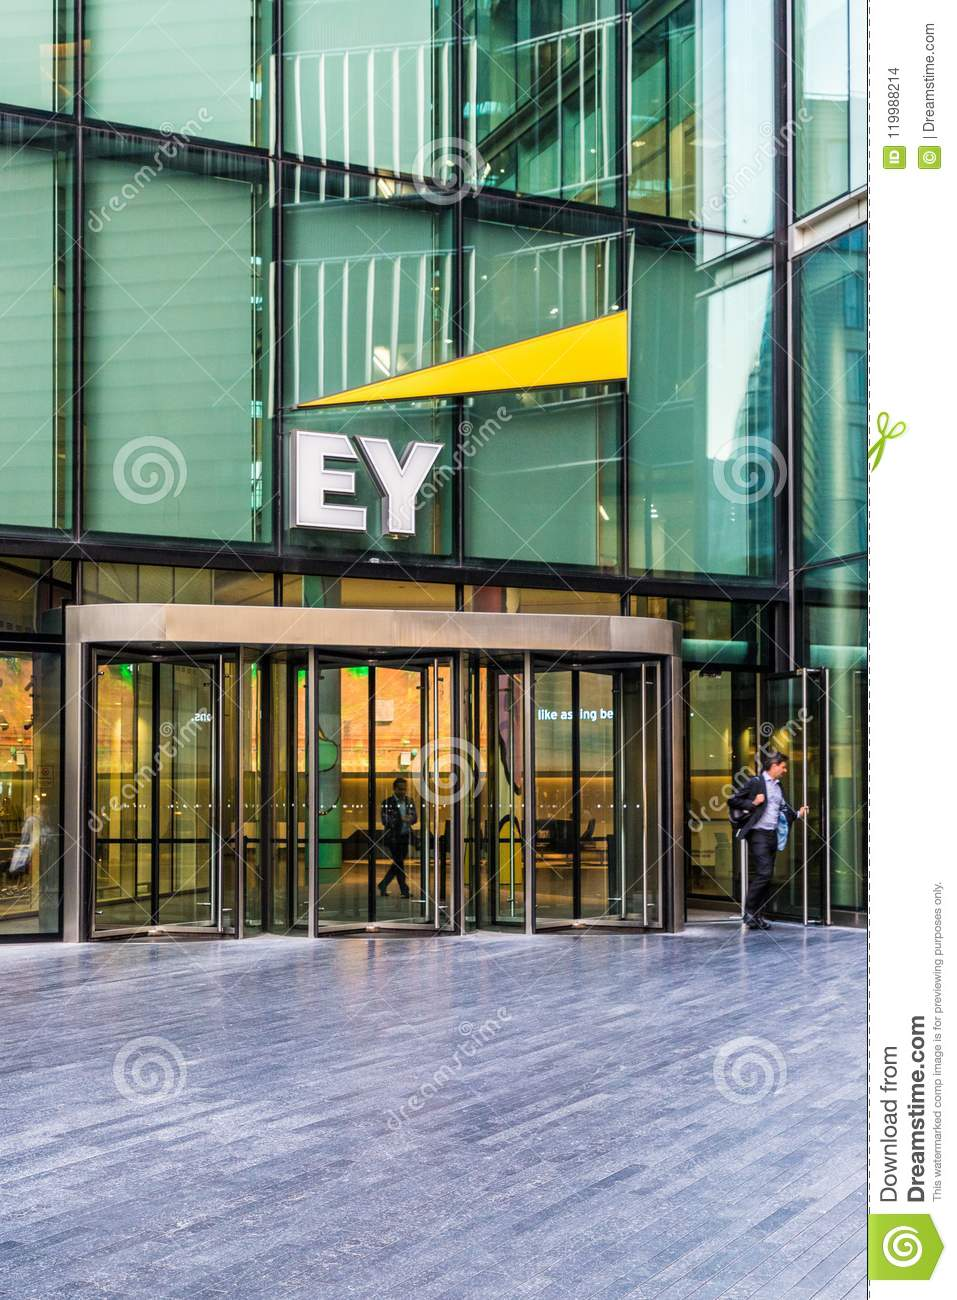 EY Accountants And Consultants In London Editorial Stock Image